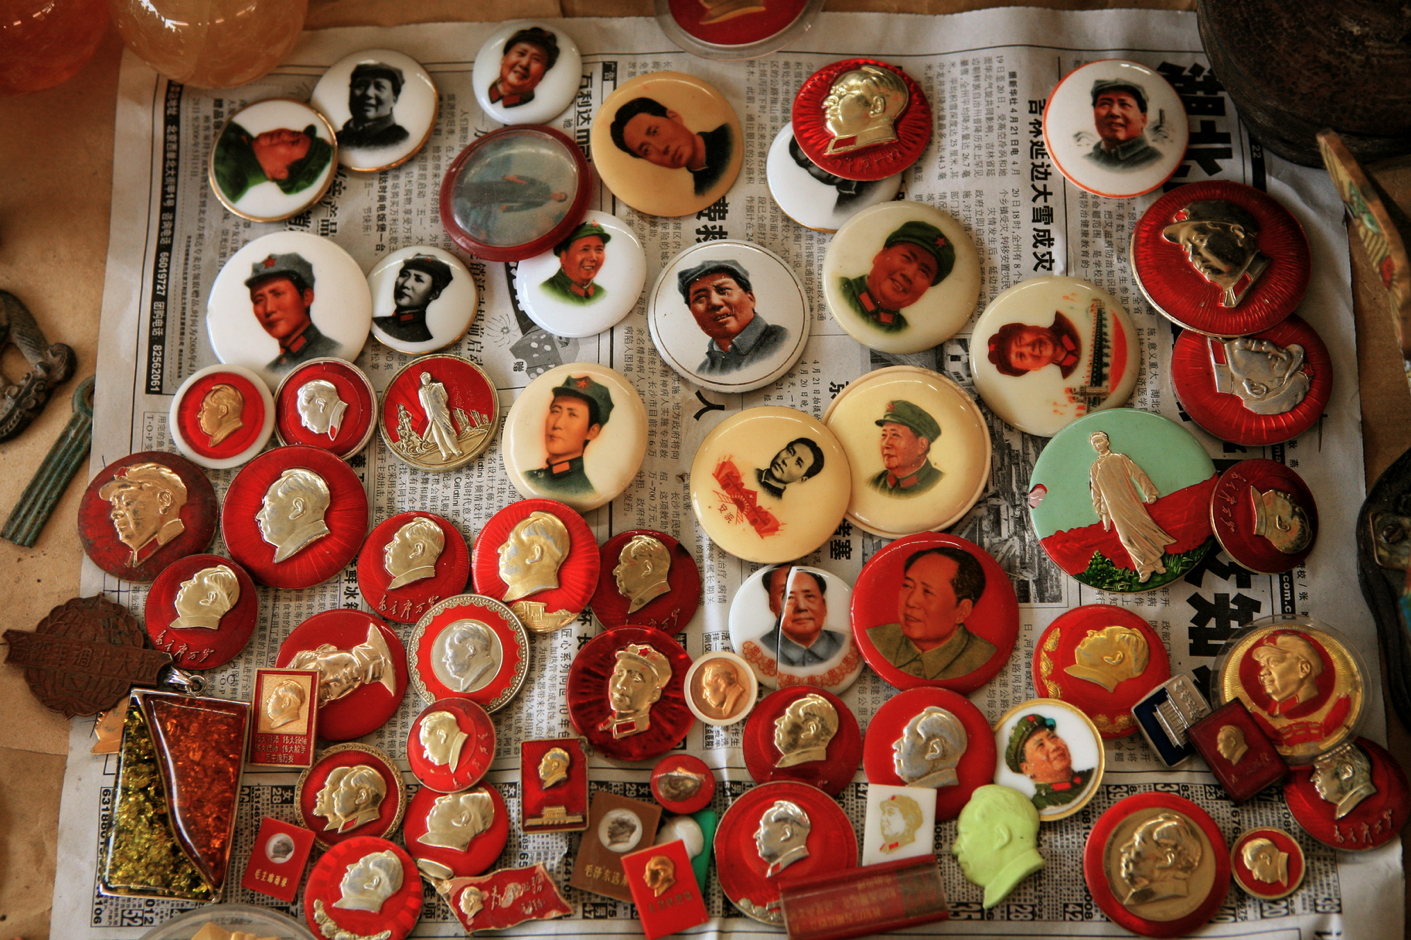 mao Buttons zedong is HD Wallpaper